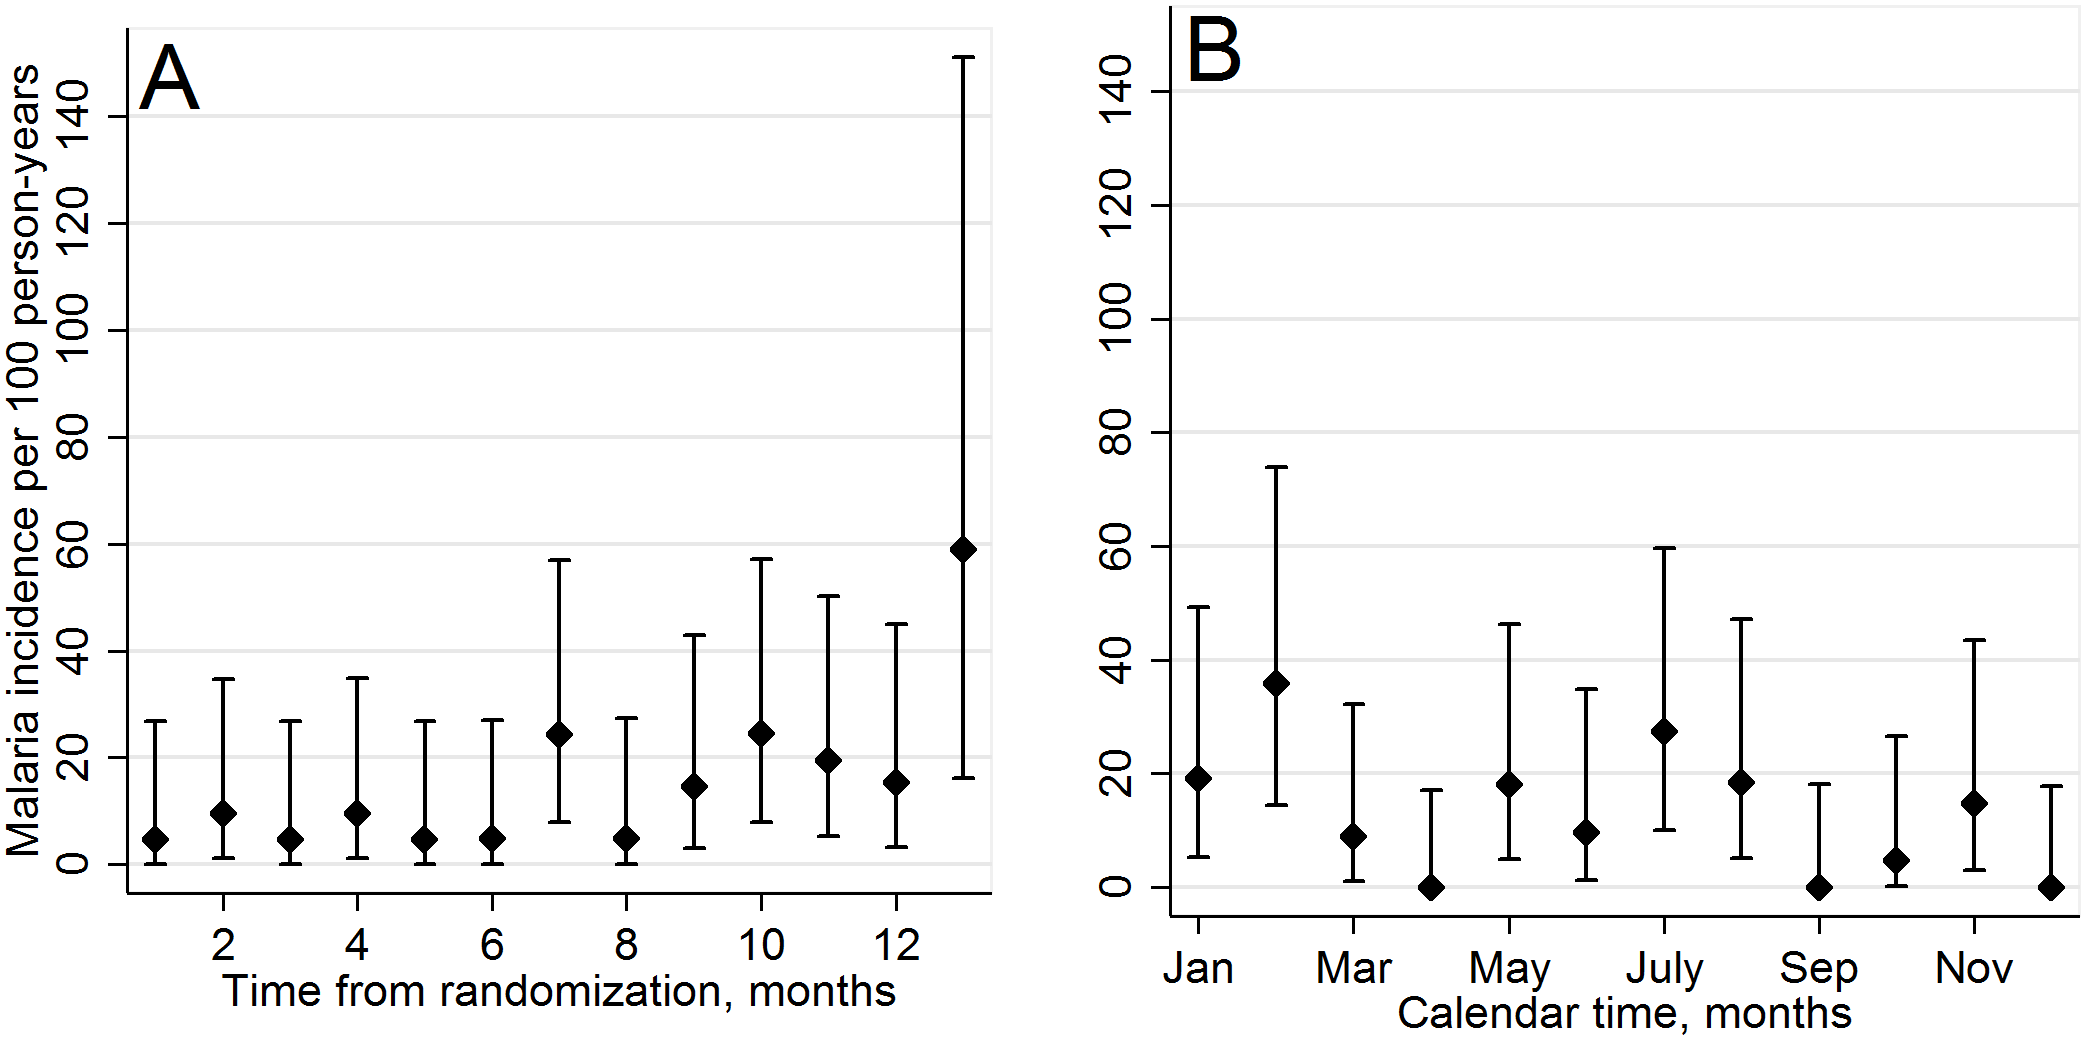 Incidence of malaria cases in CTX discontinuation arm.